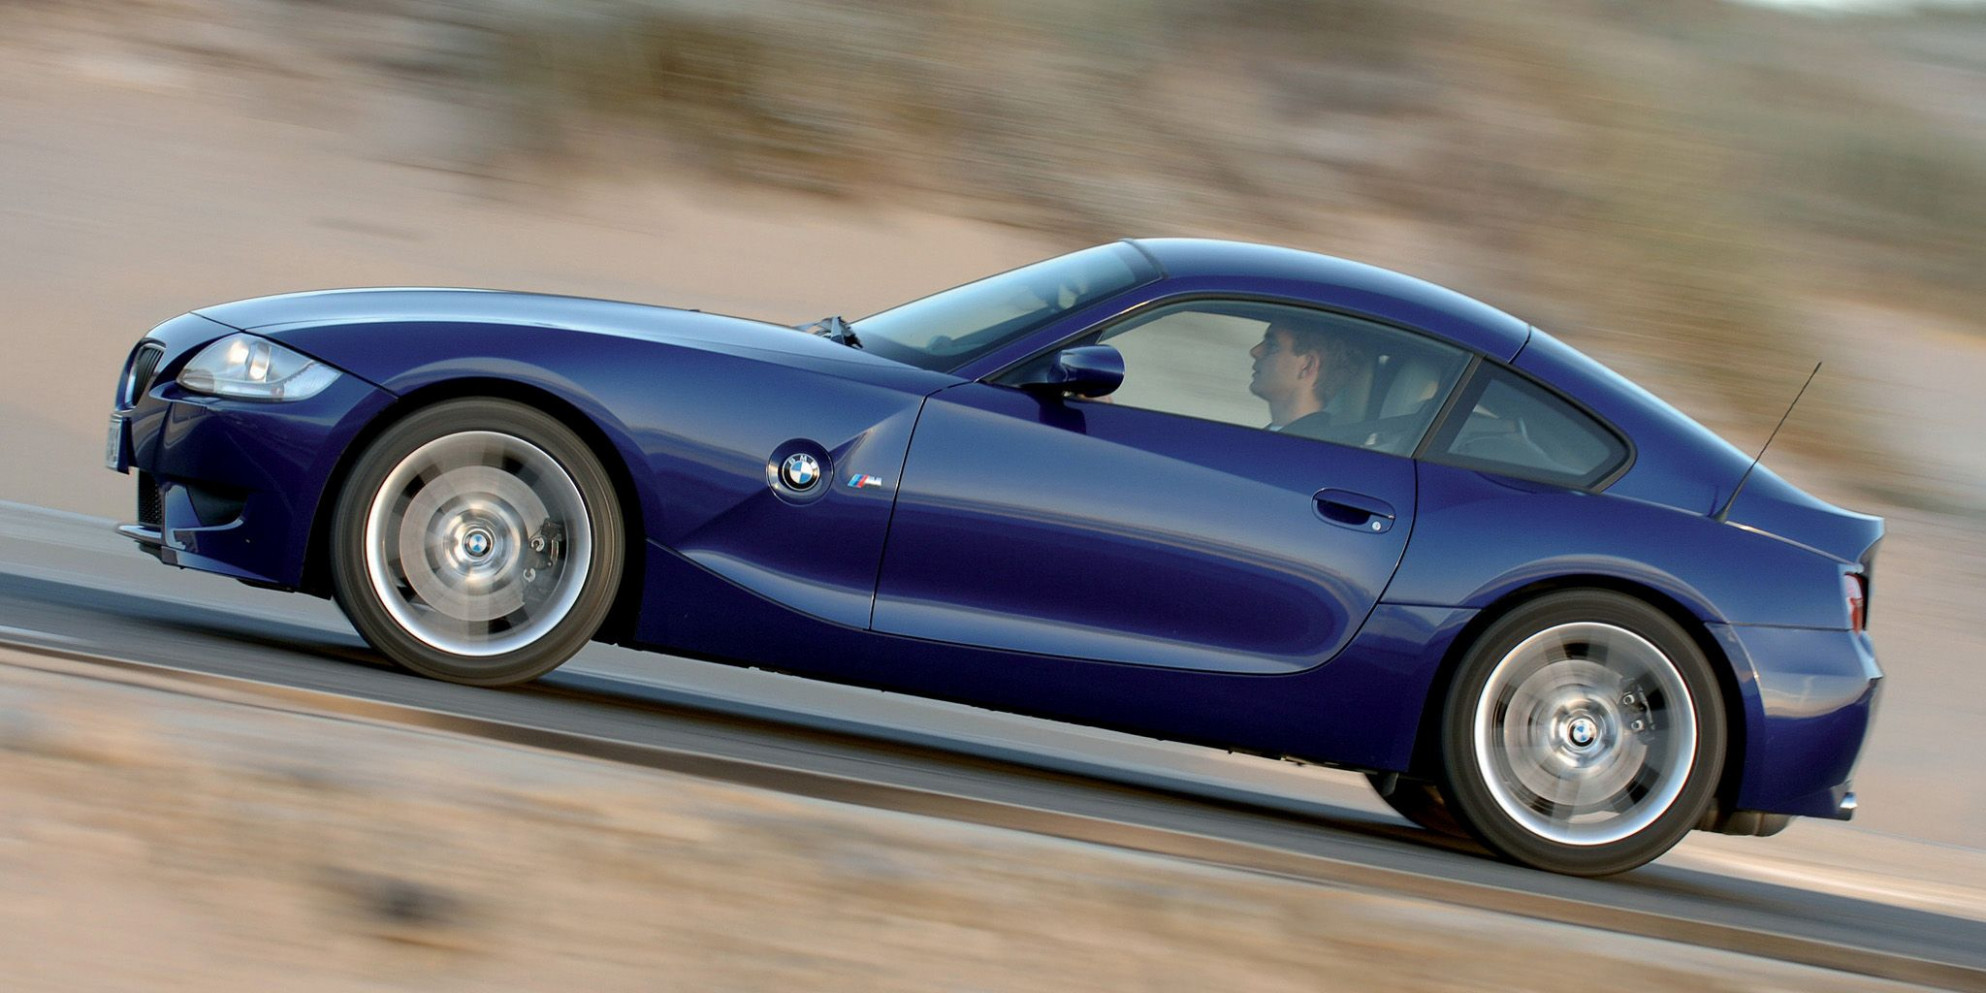 Exterior 2022 BMW Z4 M Roadster